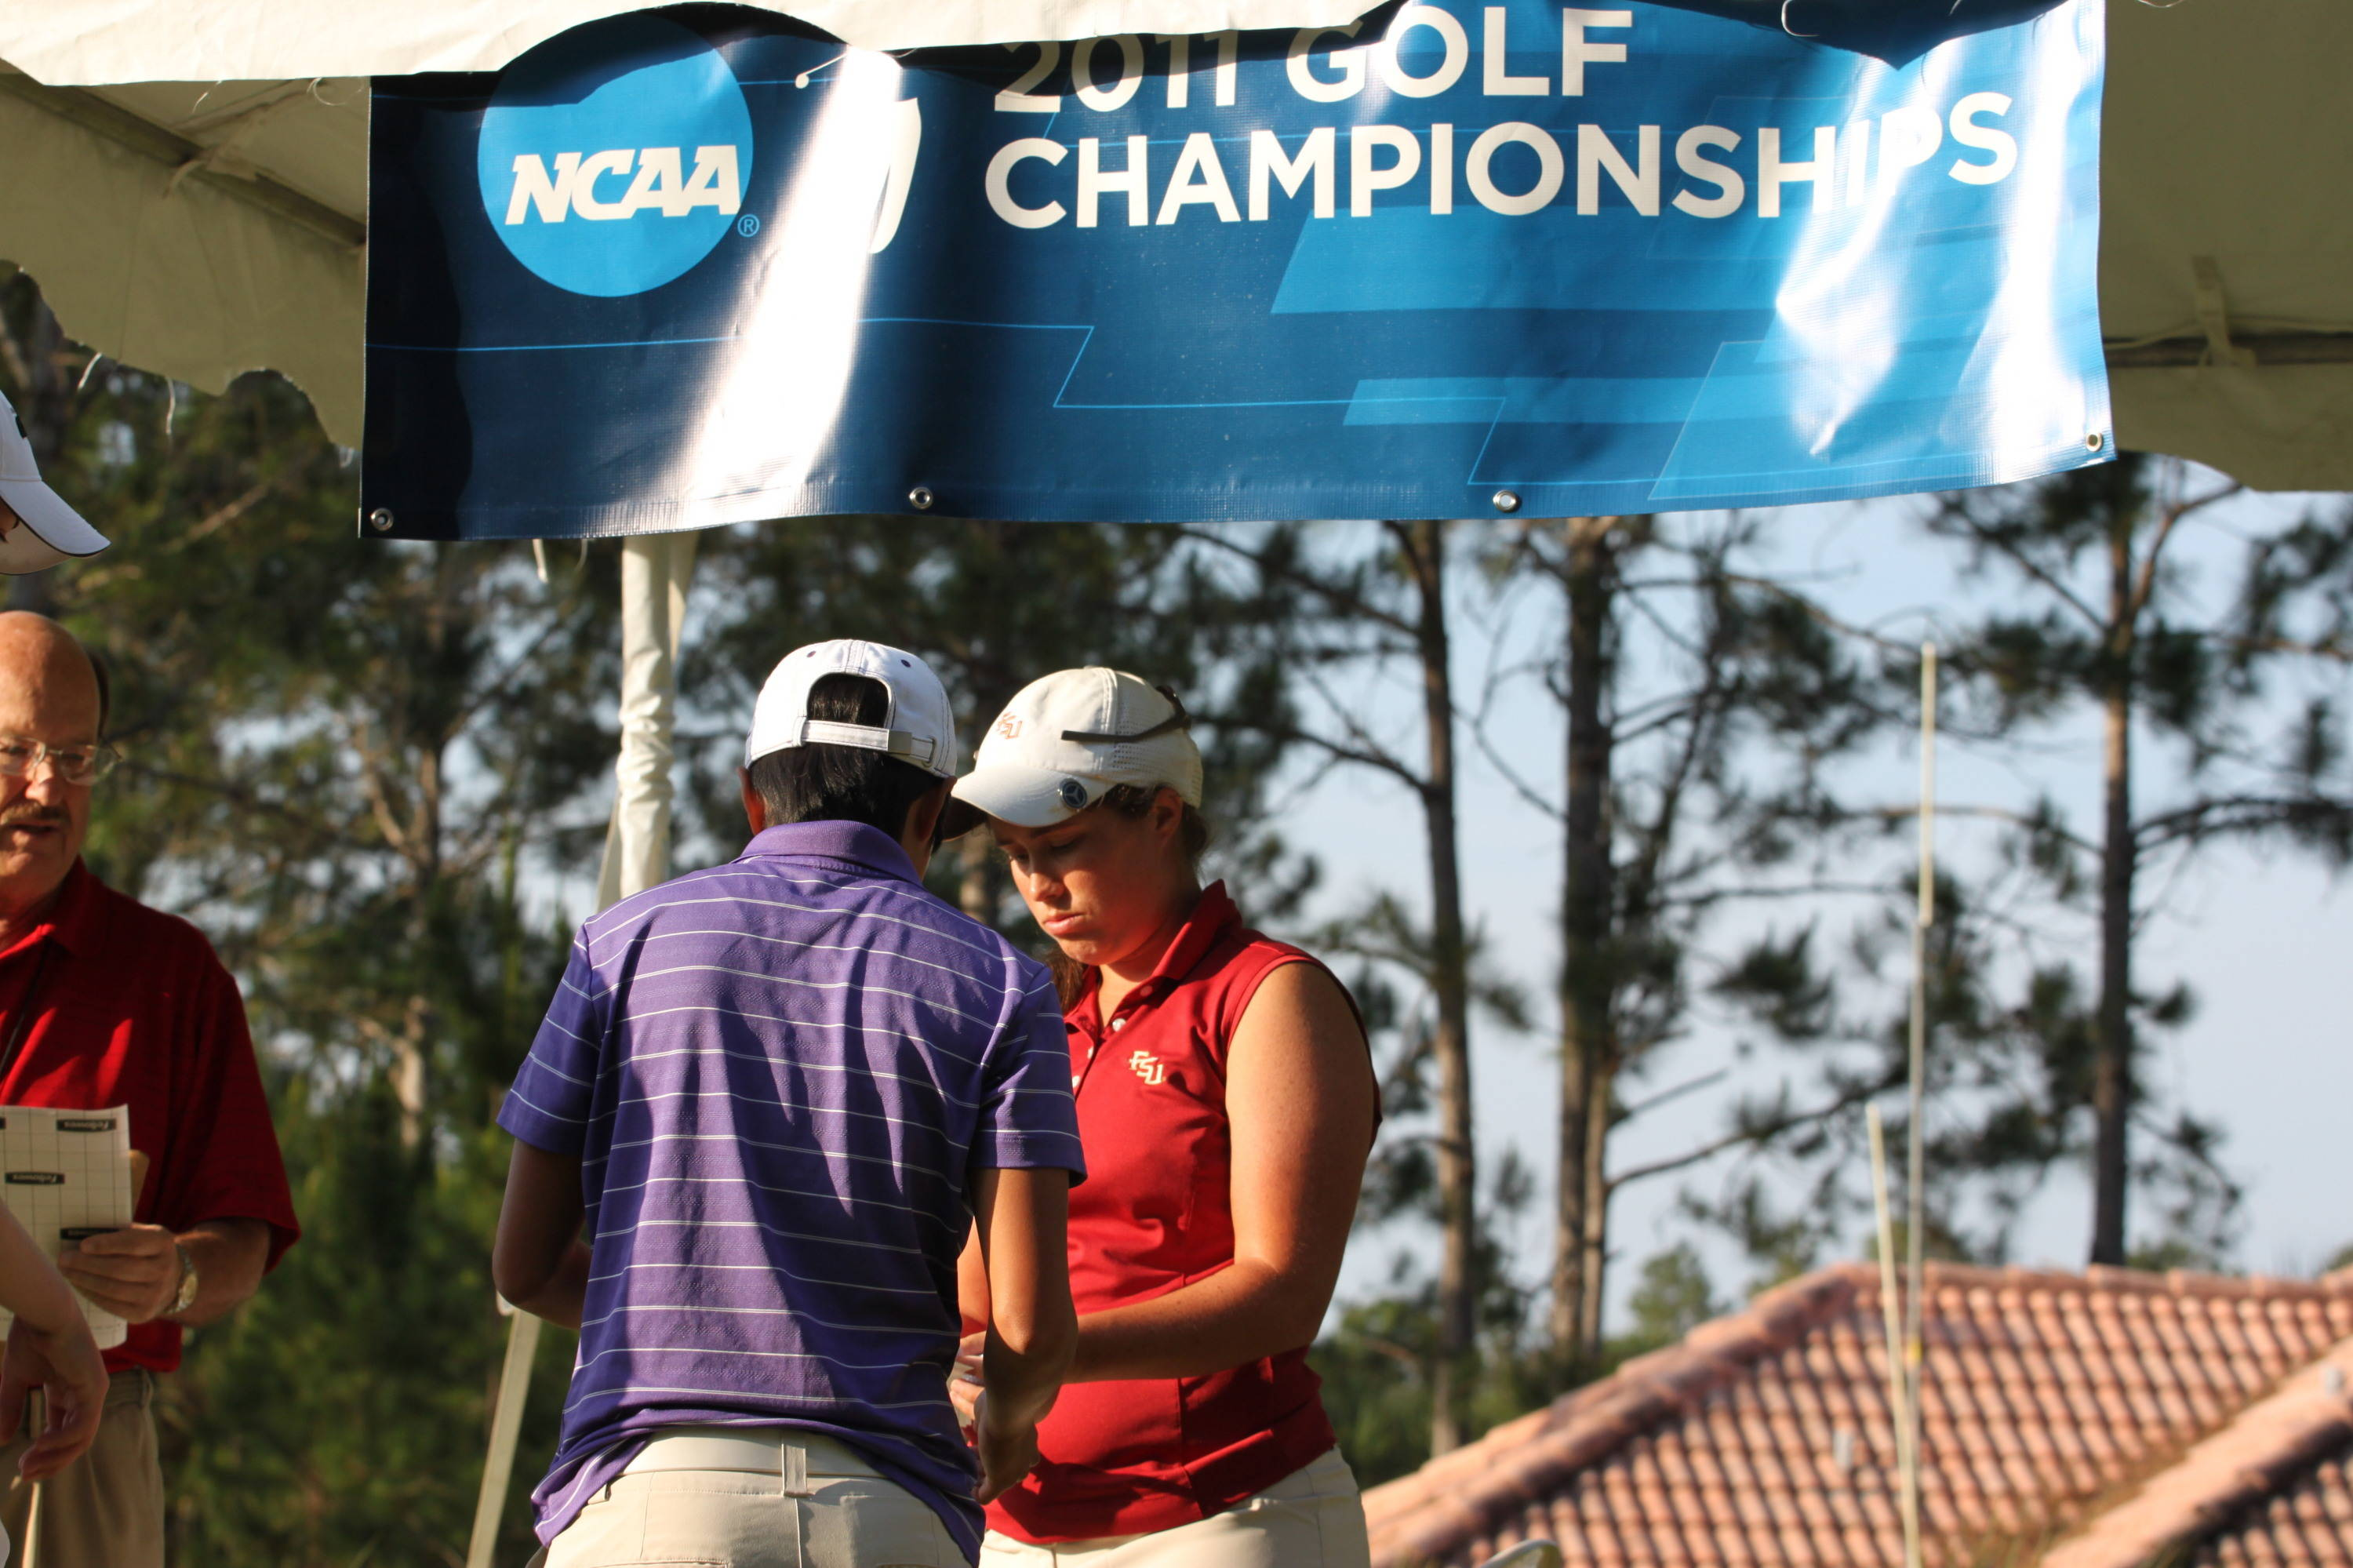 2011 NCAA Golf -- Florida State is playing with TCU and Colorado in the first round